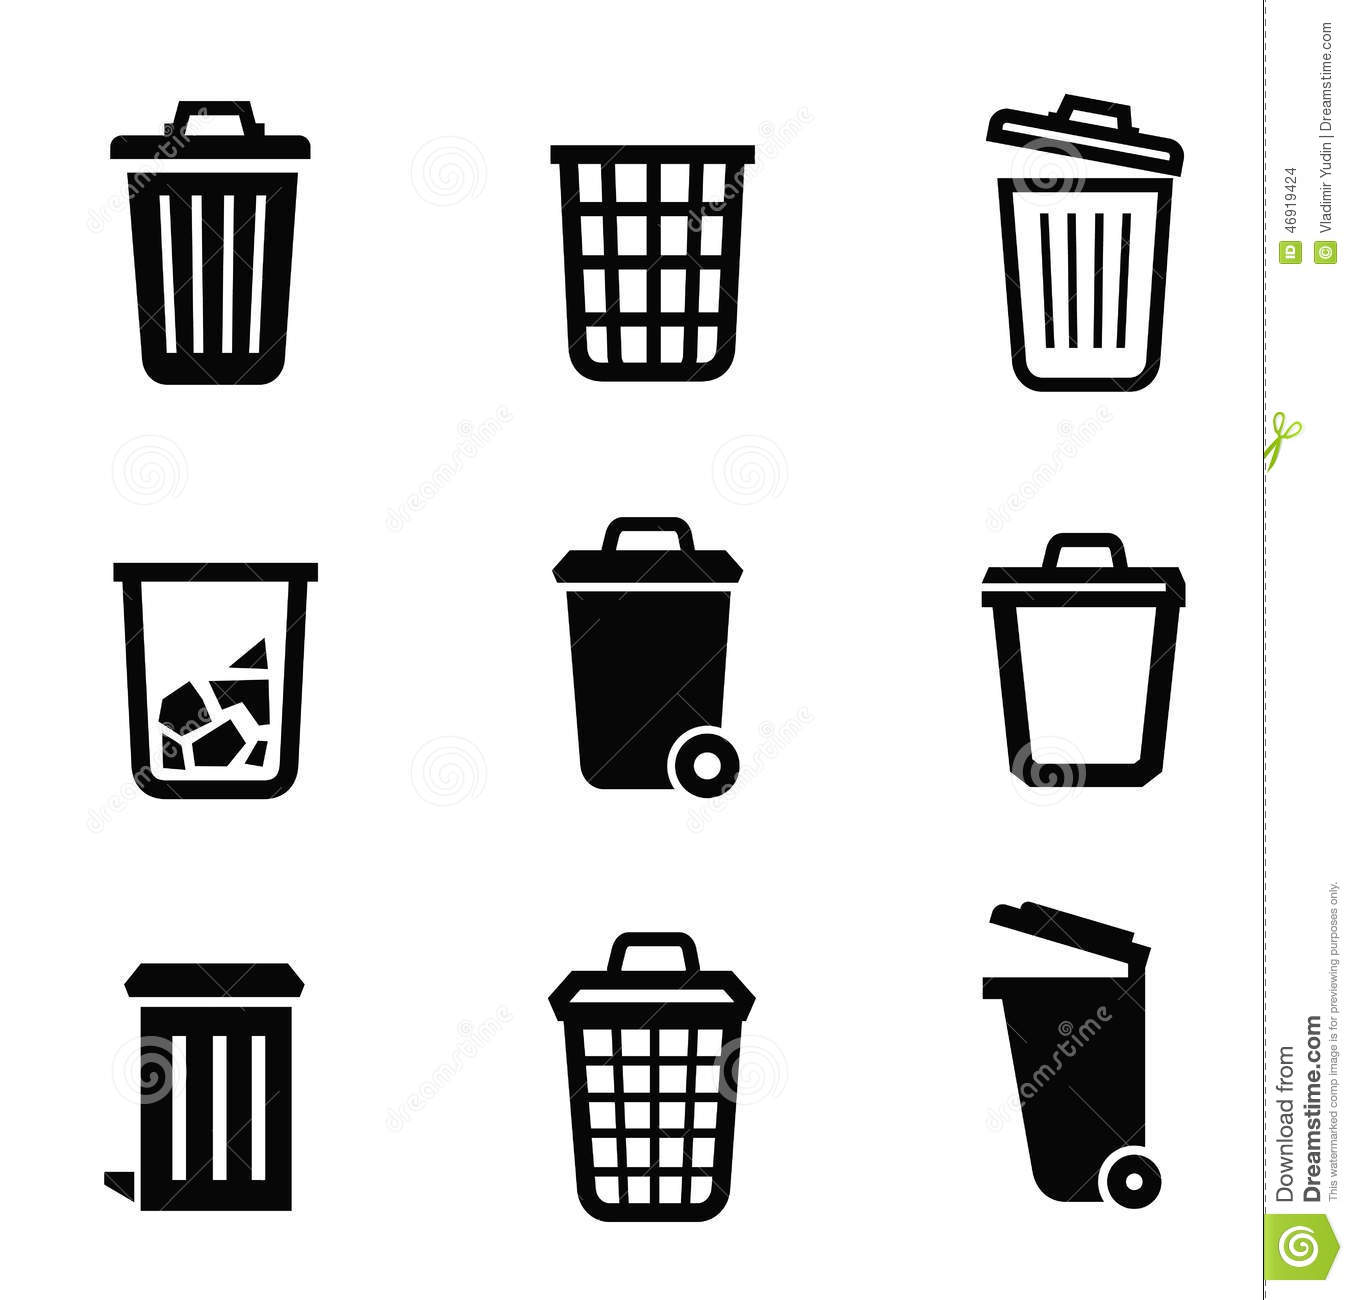 Trash Can Icon Stock Vector - Image: 46919424